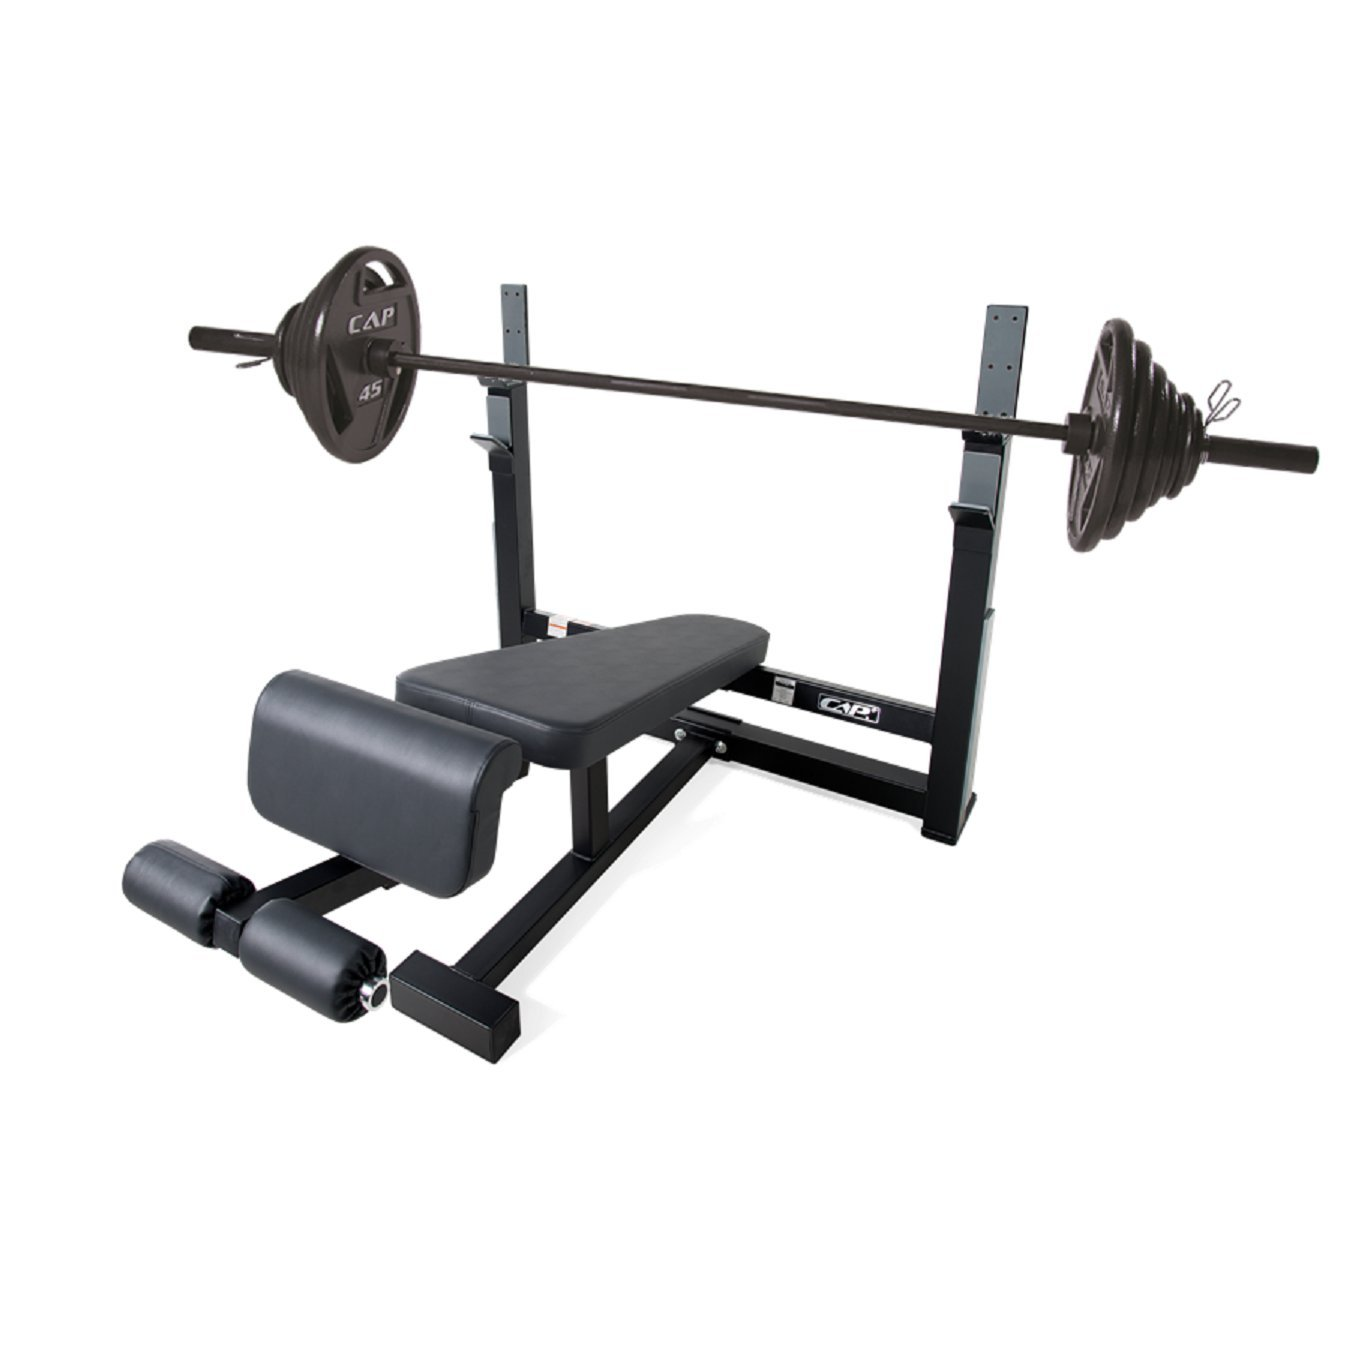 CAP Barbell 300-Pound Black Olympic Grip Set with Olympic Decline Bench